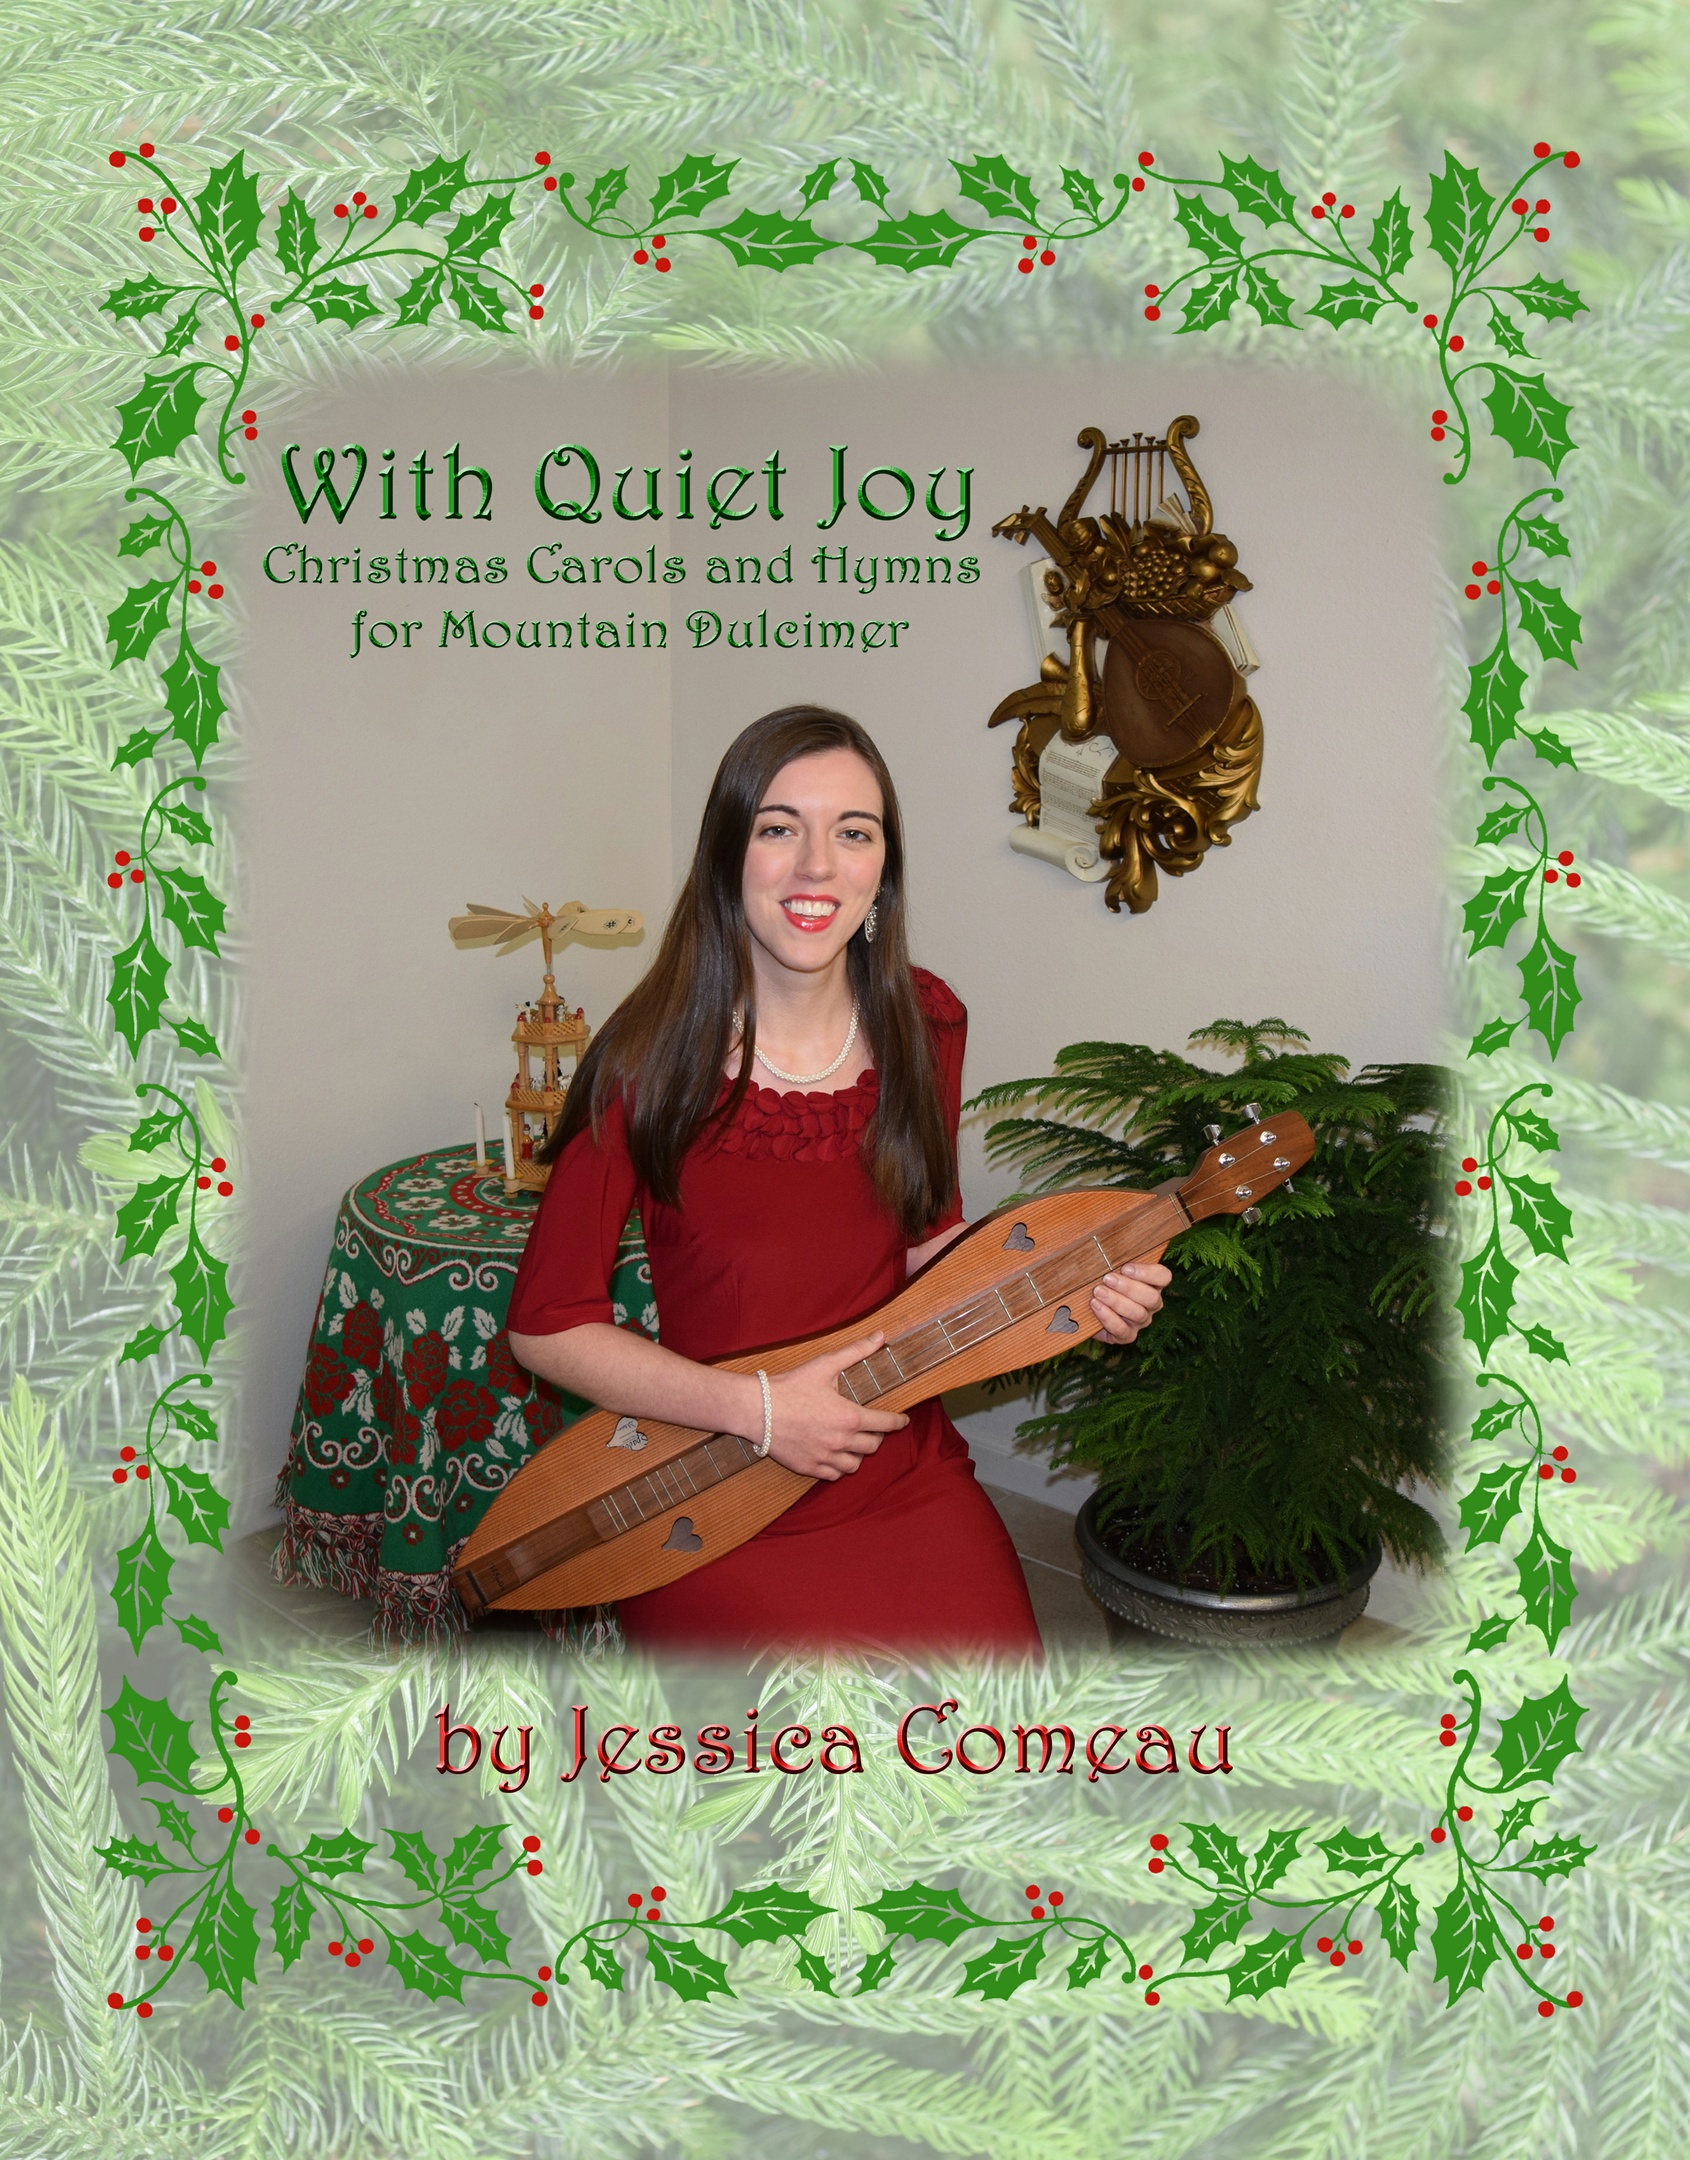 With Quiet Joy Christmas Carols and Hymns for Mountain Dulcimer